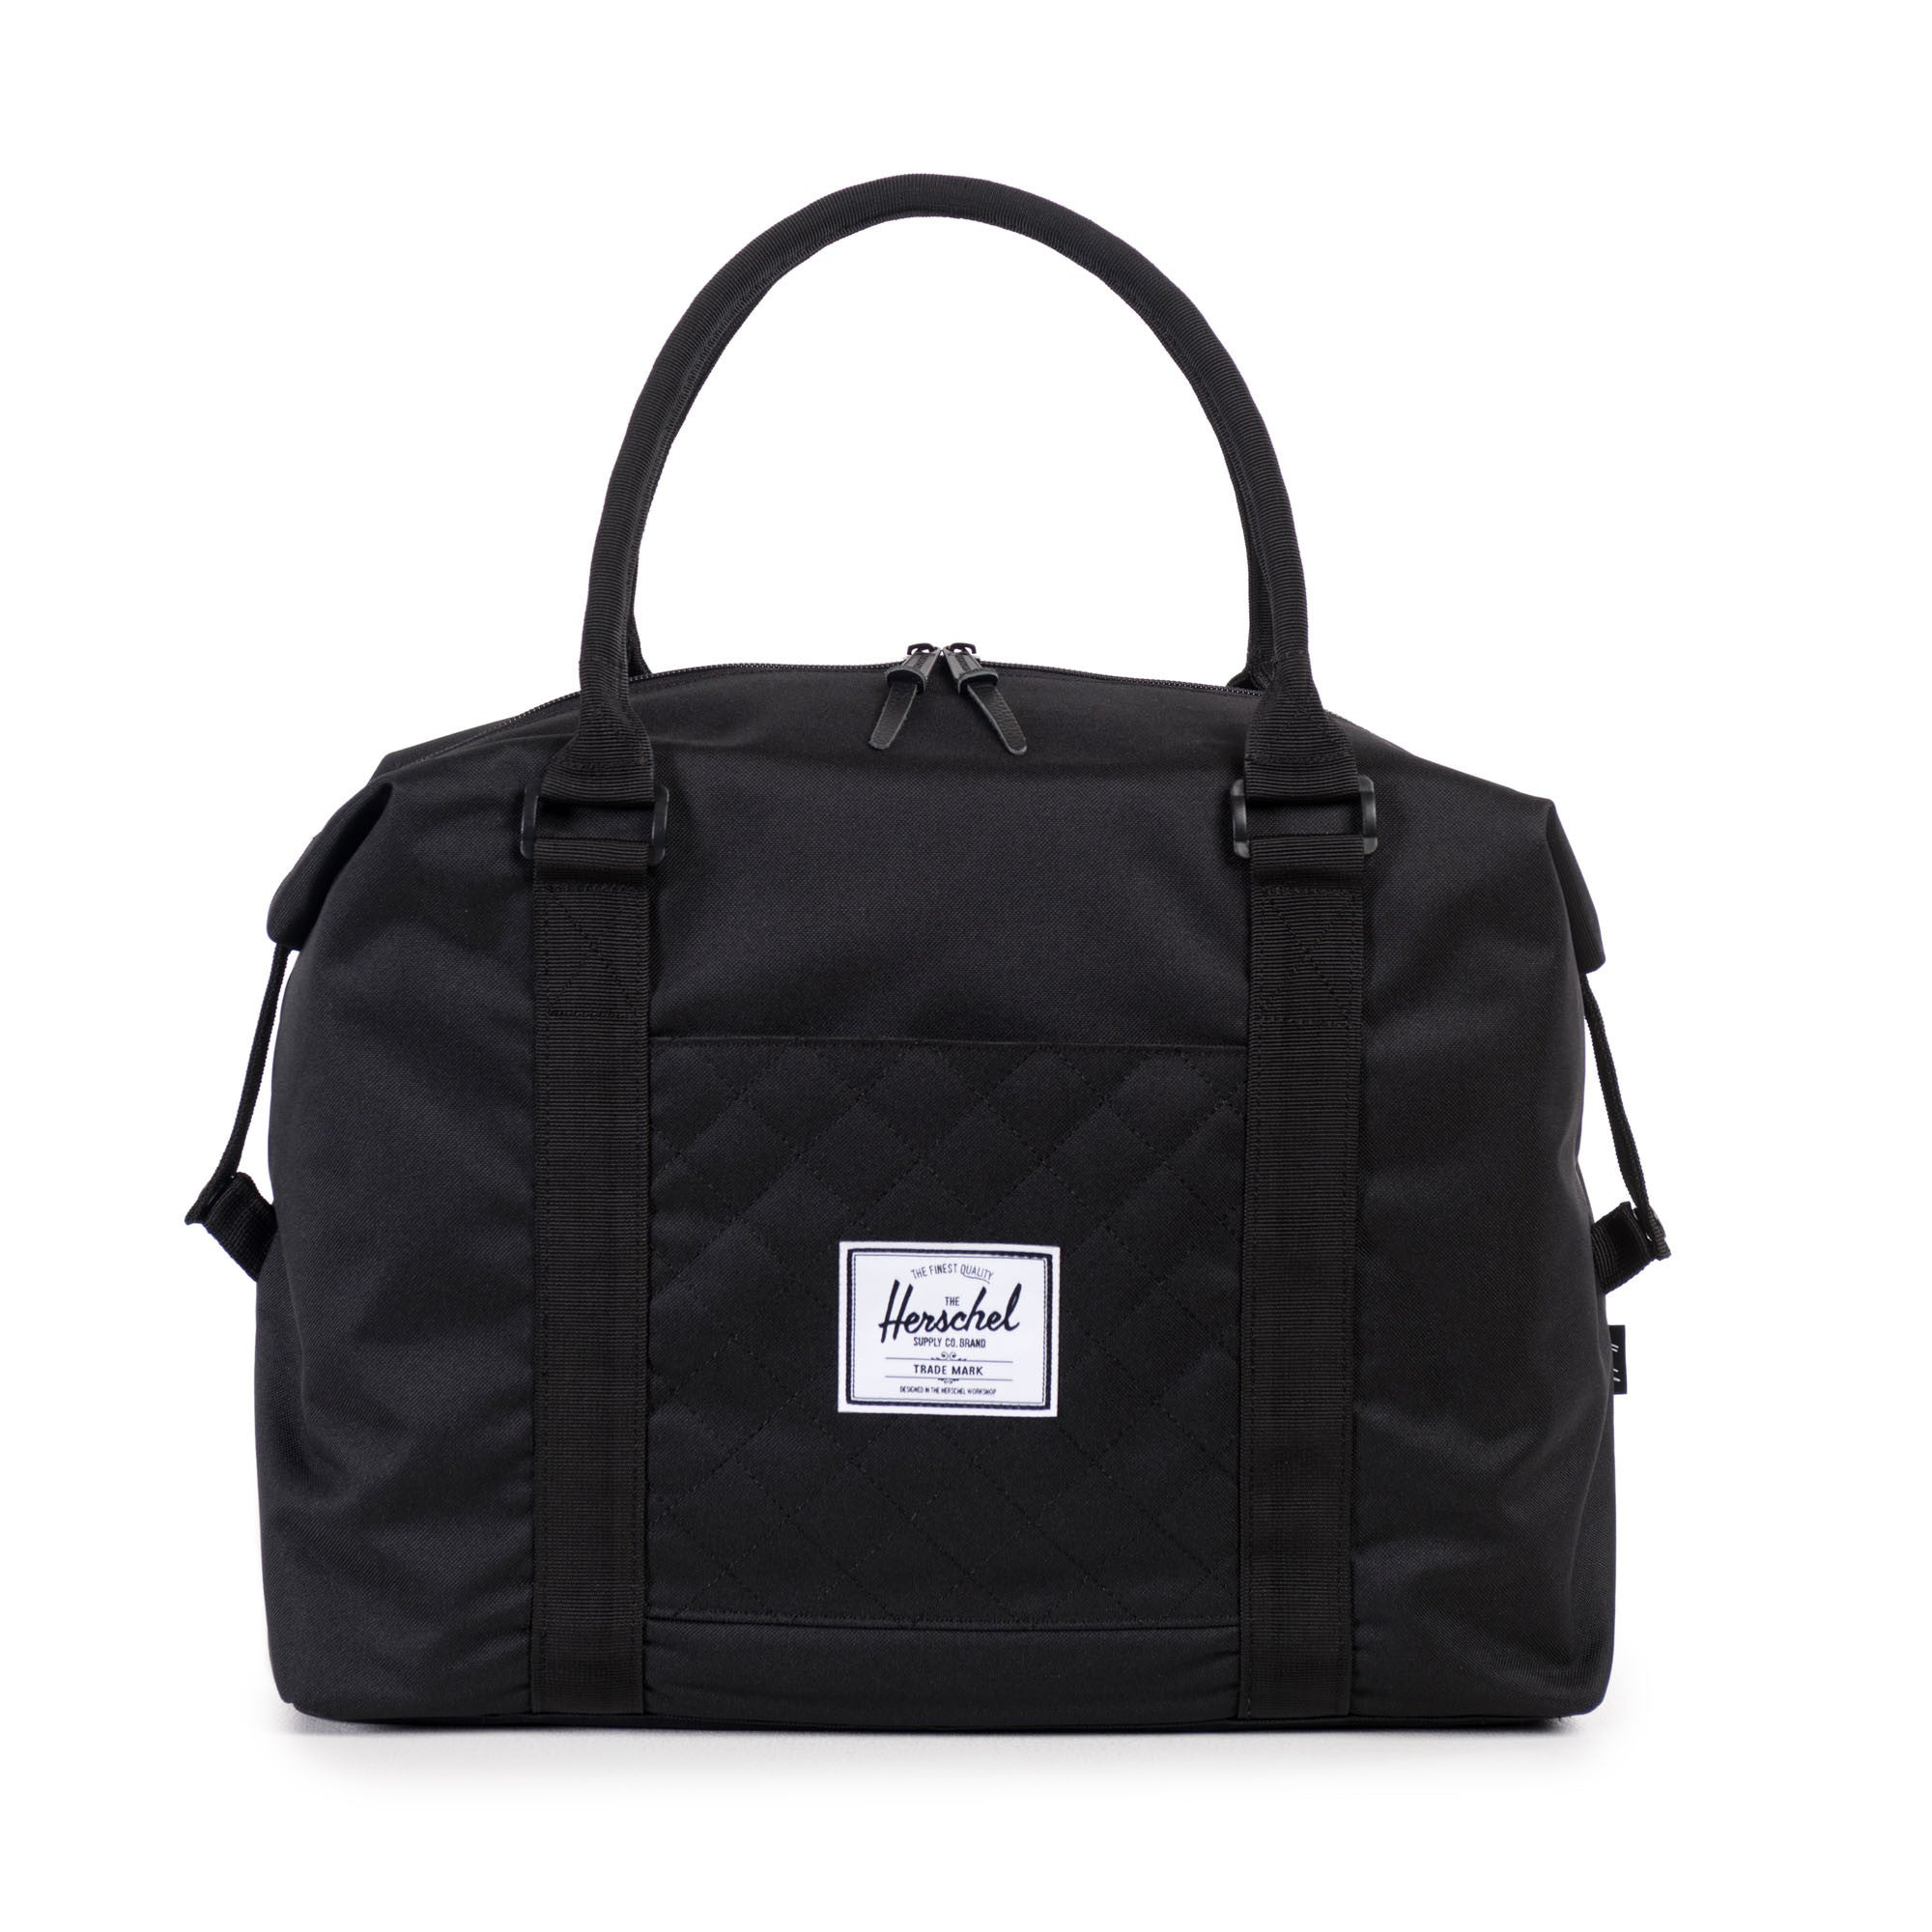 Herschel Supply Co. - Strand Duffle, Black Quilted - The Giant Peach - 1